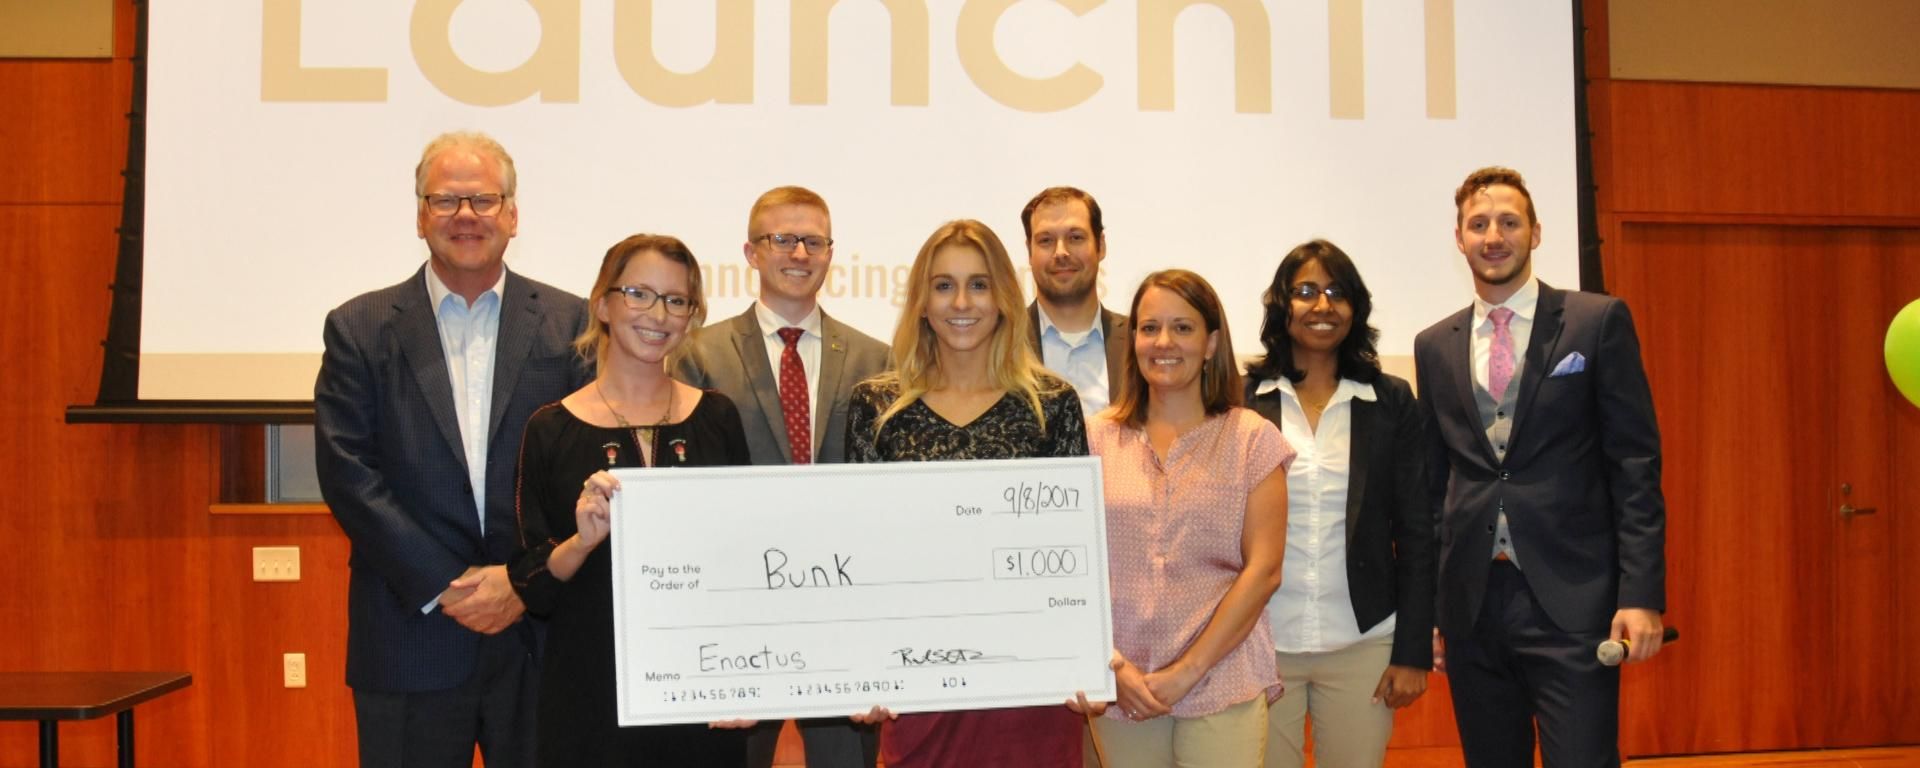 Launch It entrepreneurial competition winning students, judges and organizers